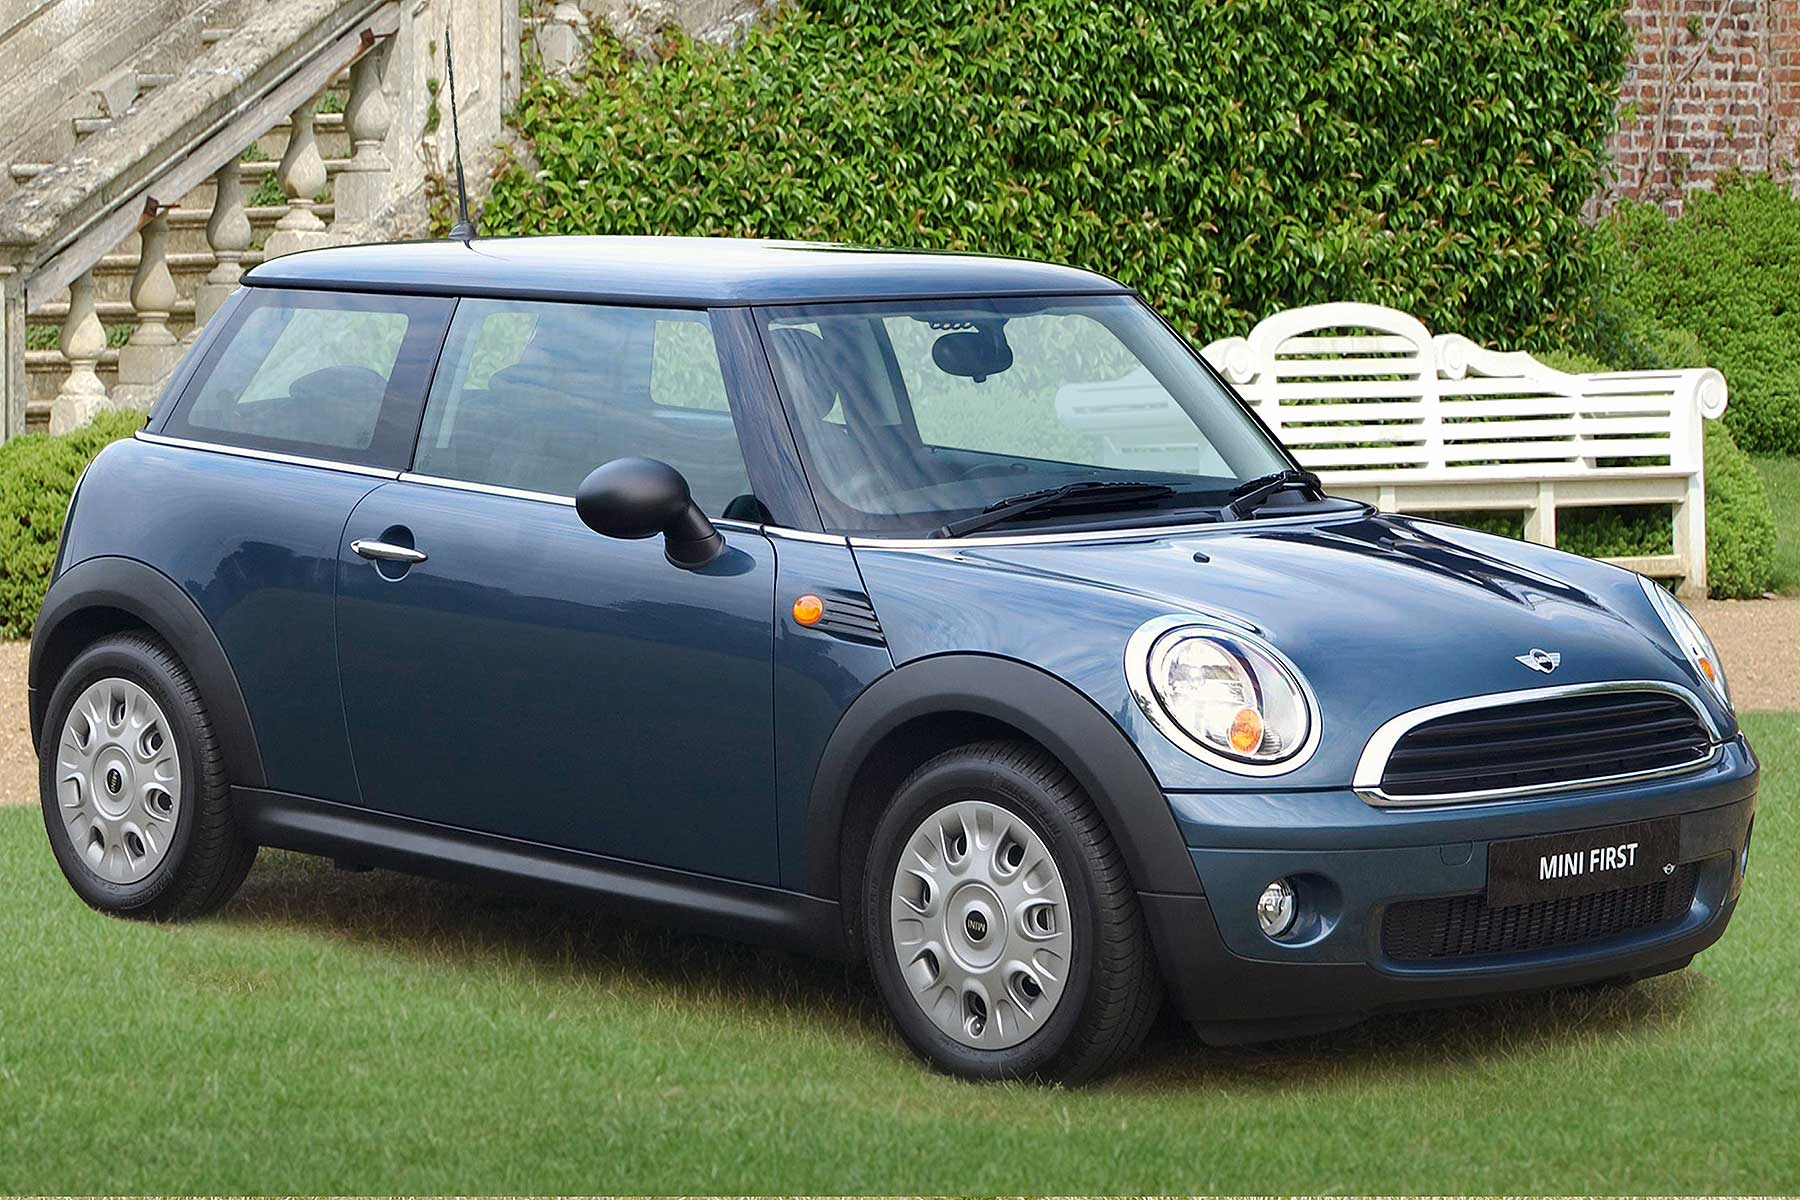 The cheapest cars to insure for 17-18 year olds: MINI One